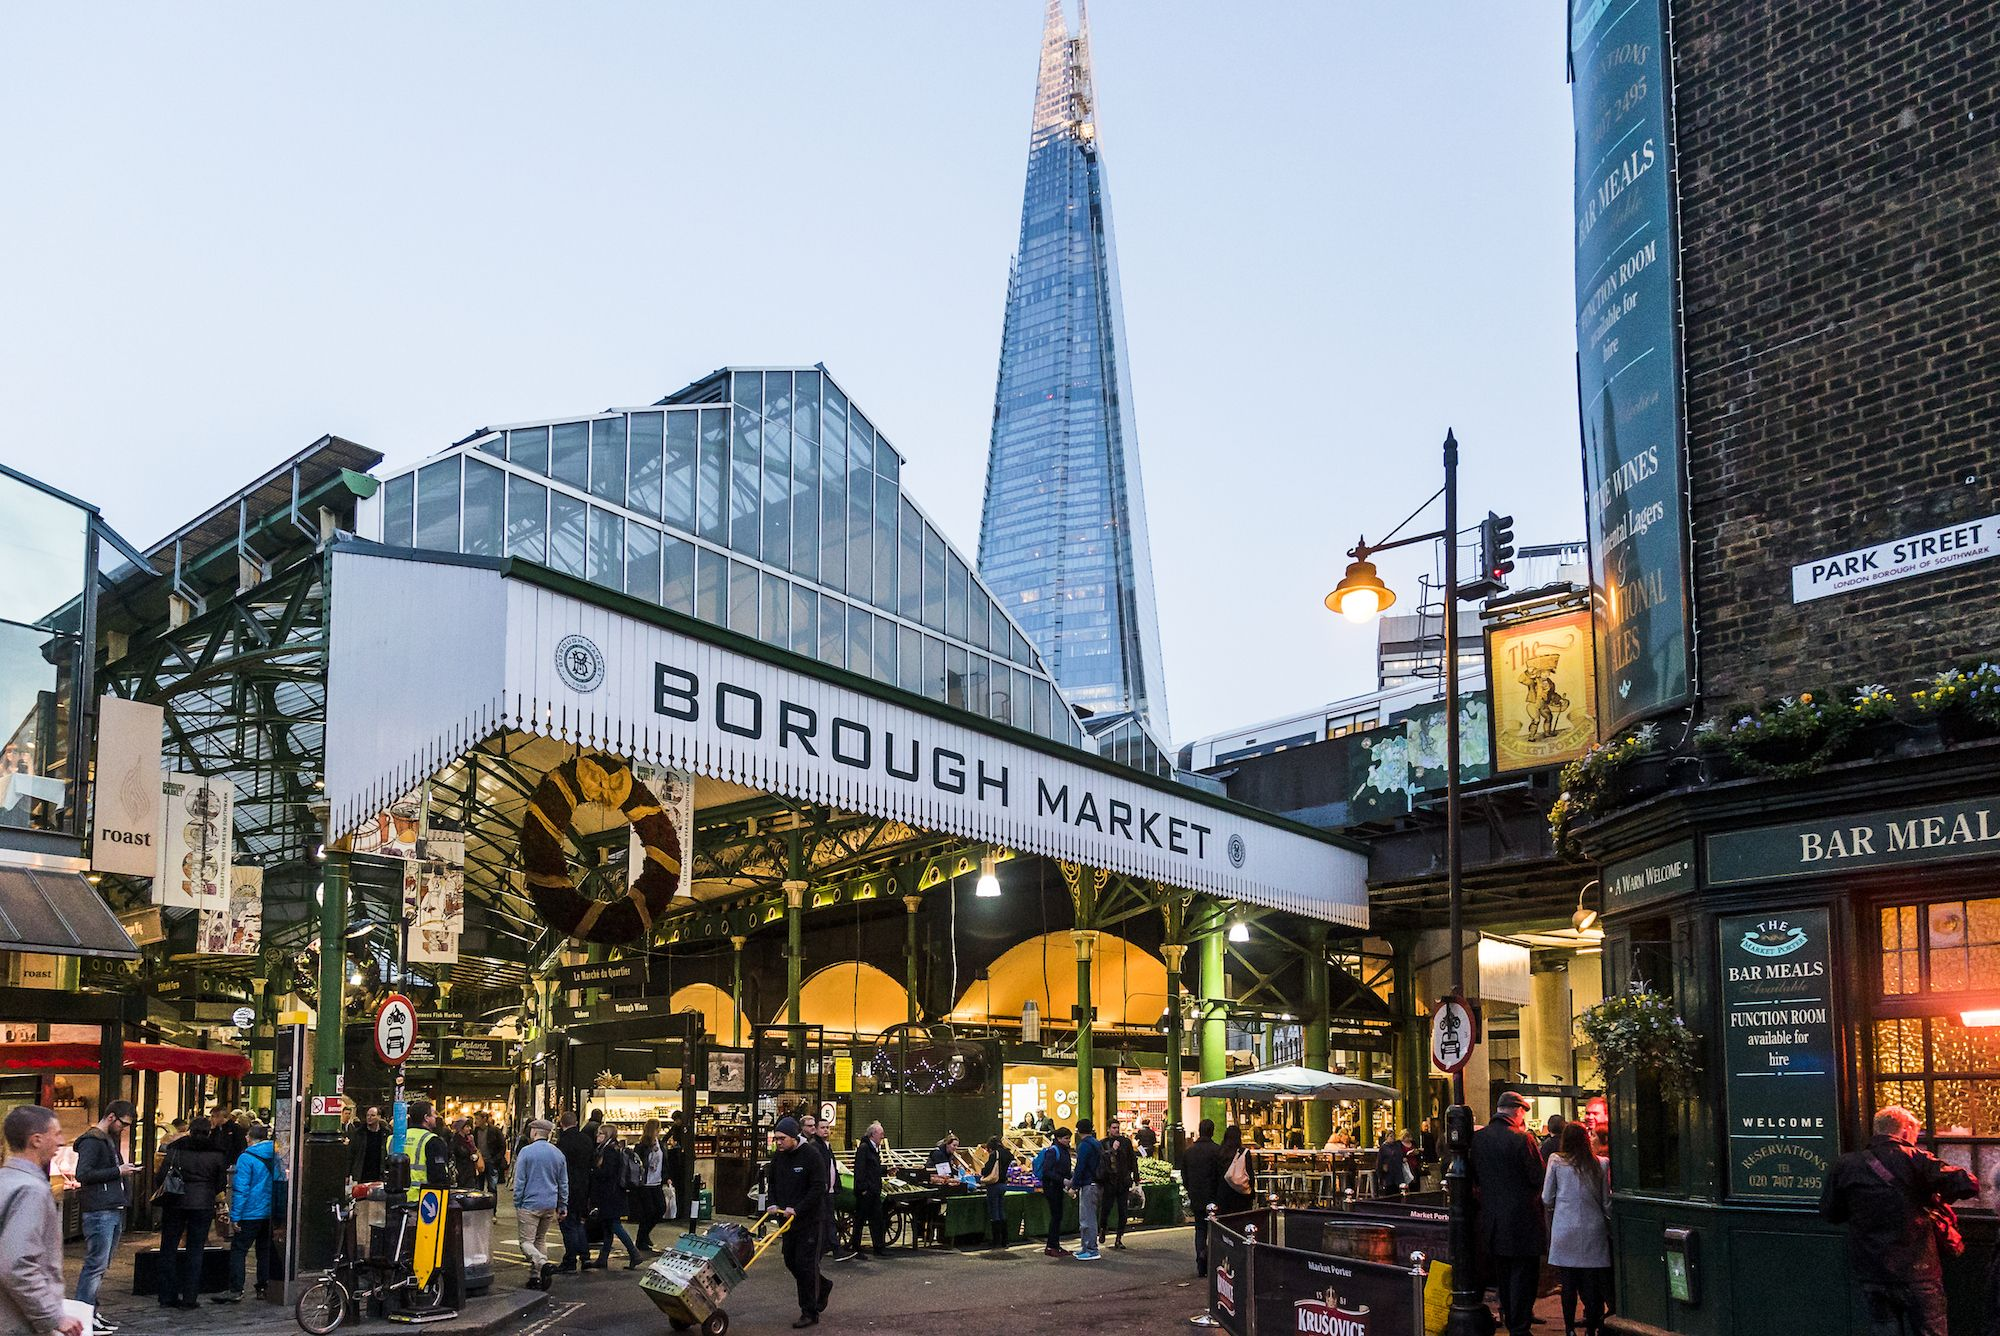 14 Of The Best Markets In London, From Food Stalls To Vintage Clothing Coves